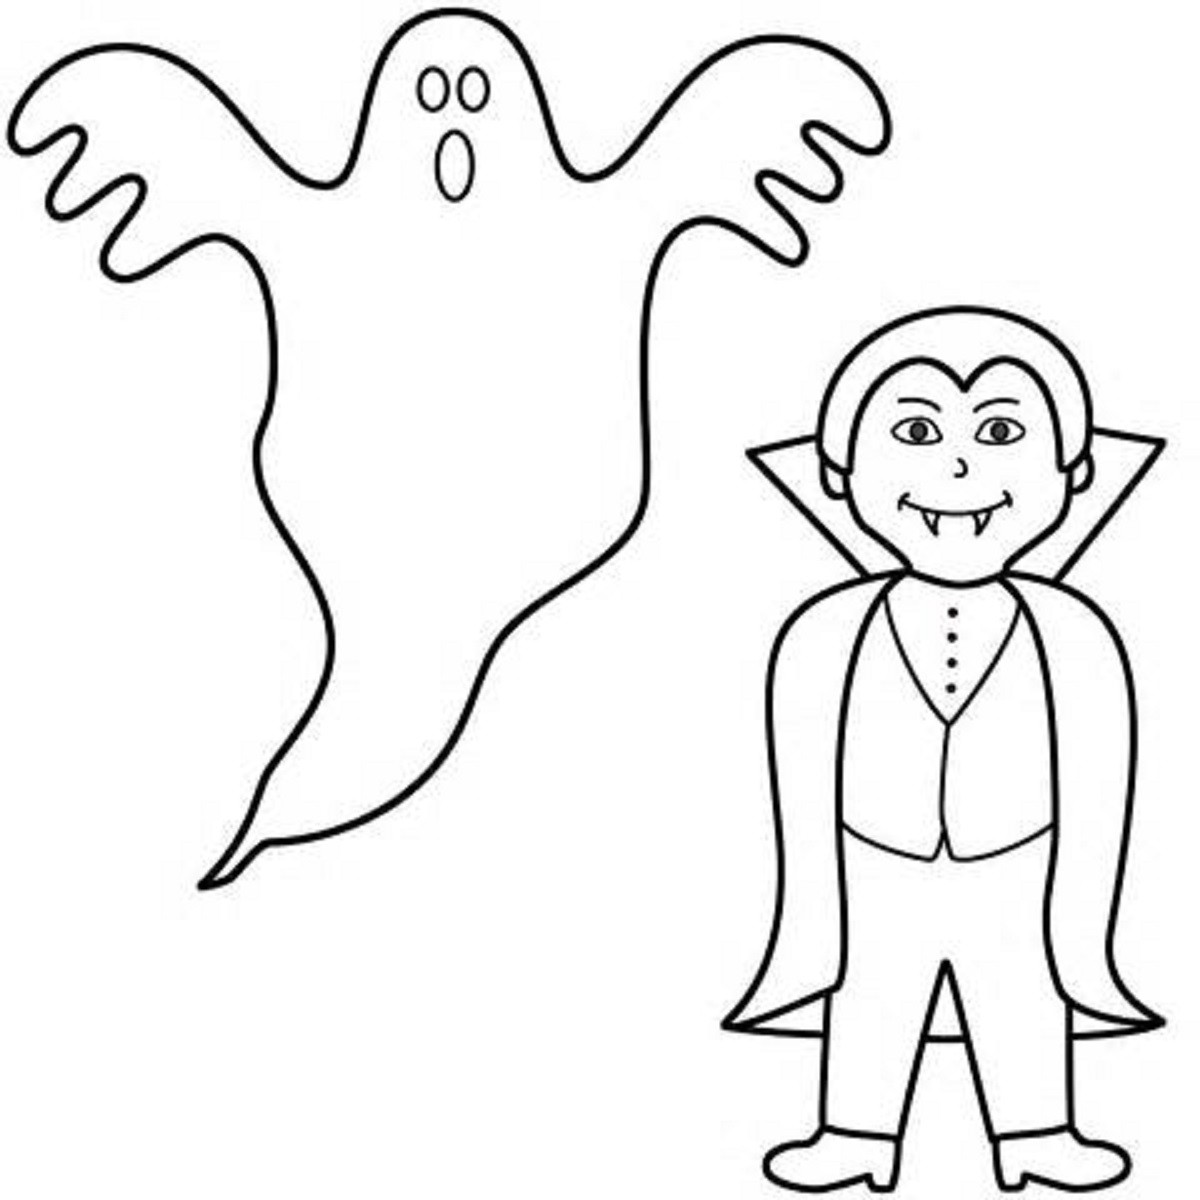 1200x1200 Ghost Halloween Coloring Pages Drawing For Kids At Getdrawings Com